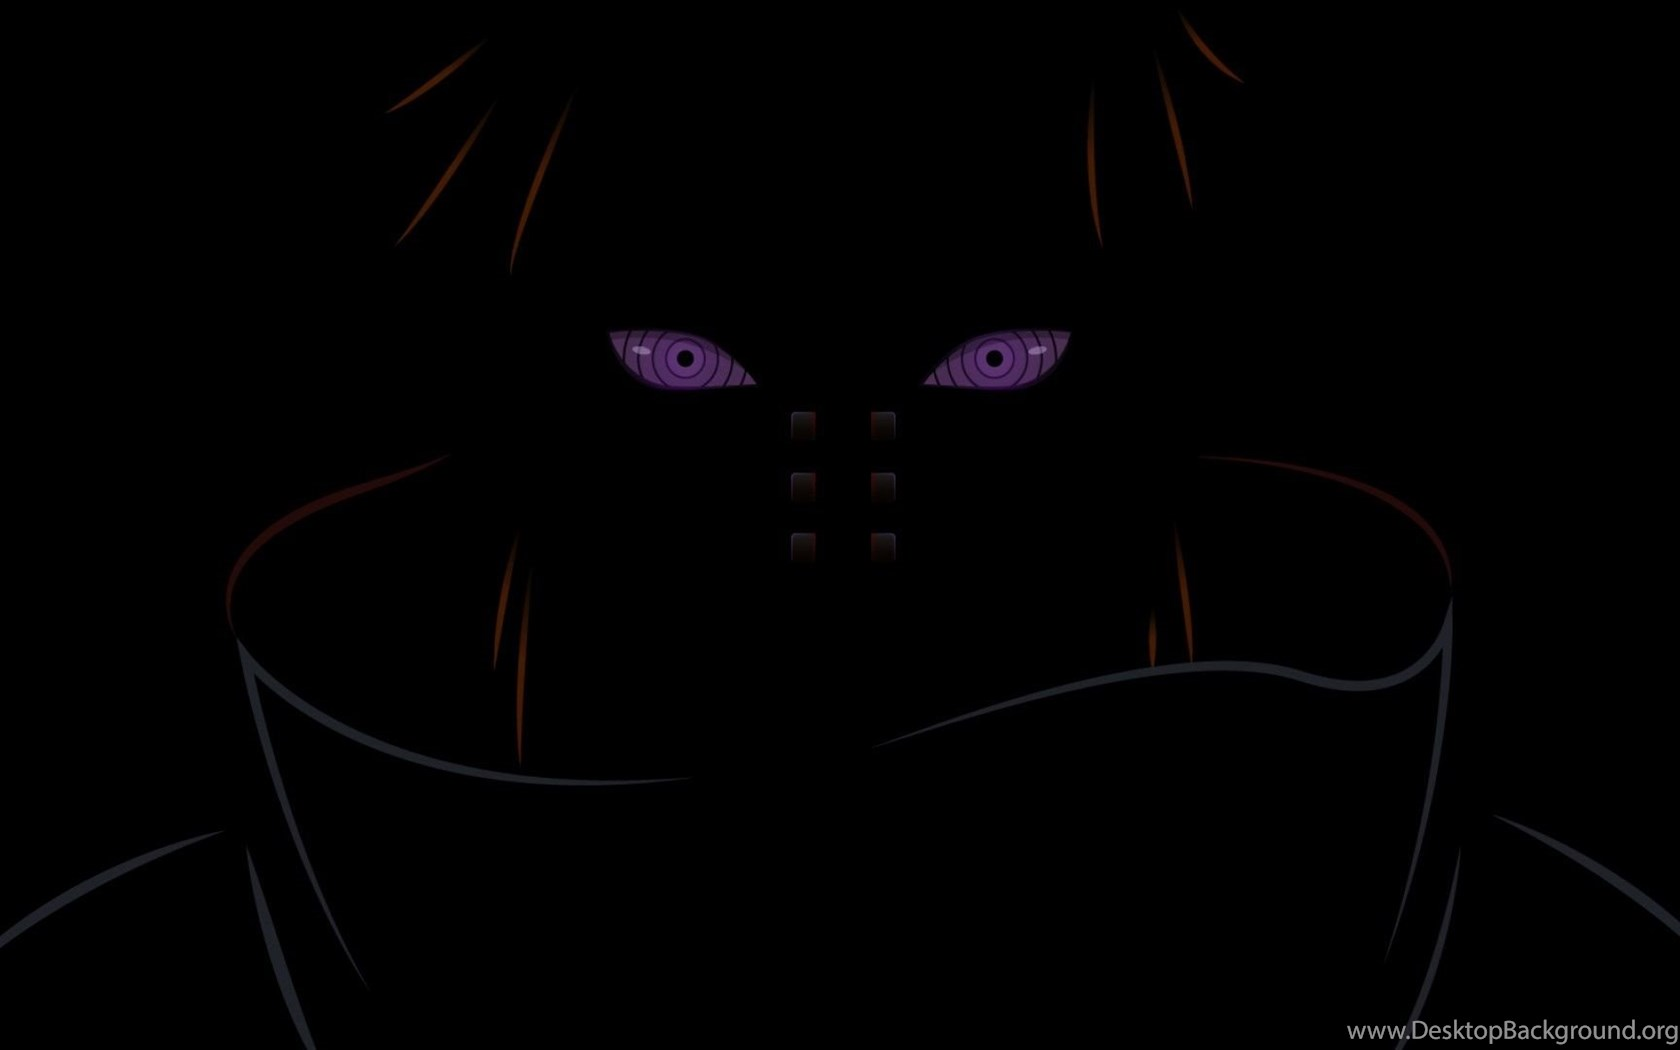 Rinnegan wallpapers wallpapers cave desktop background - Rinnegan wallpaper hd ...